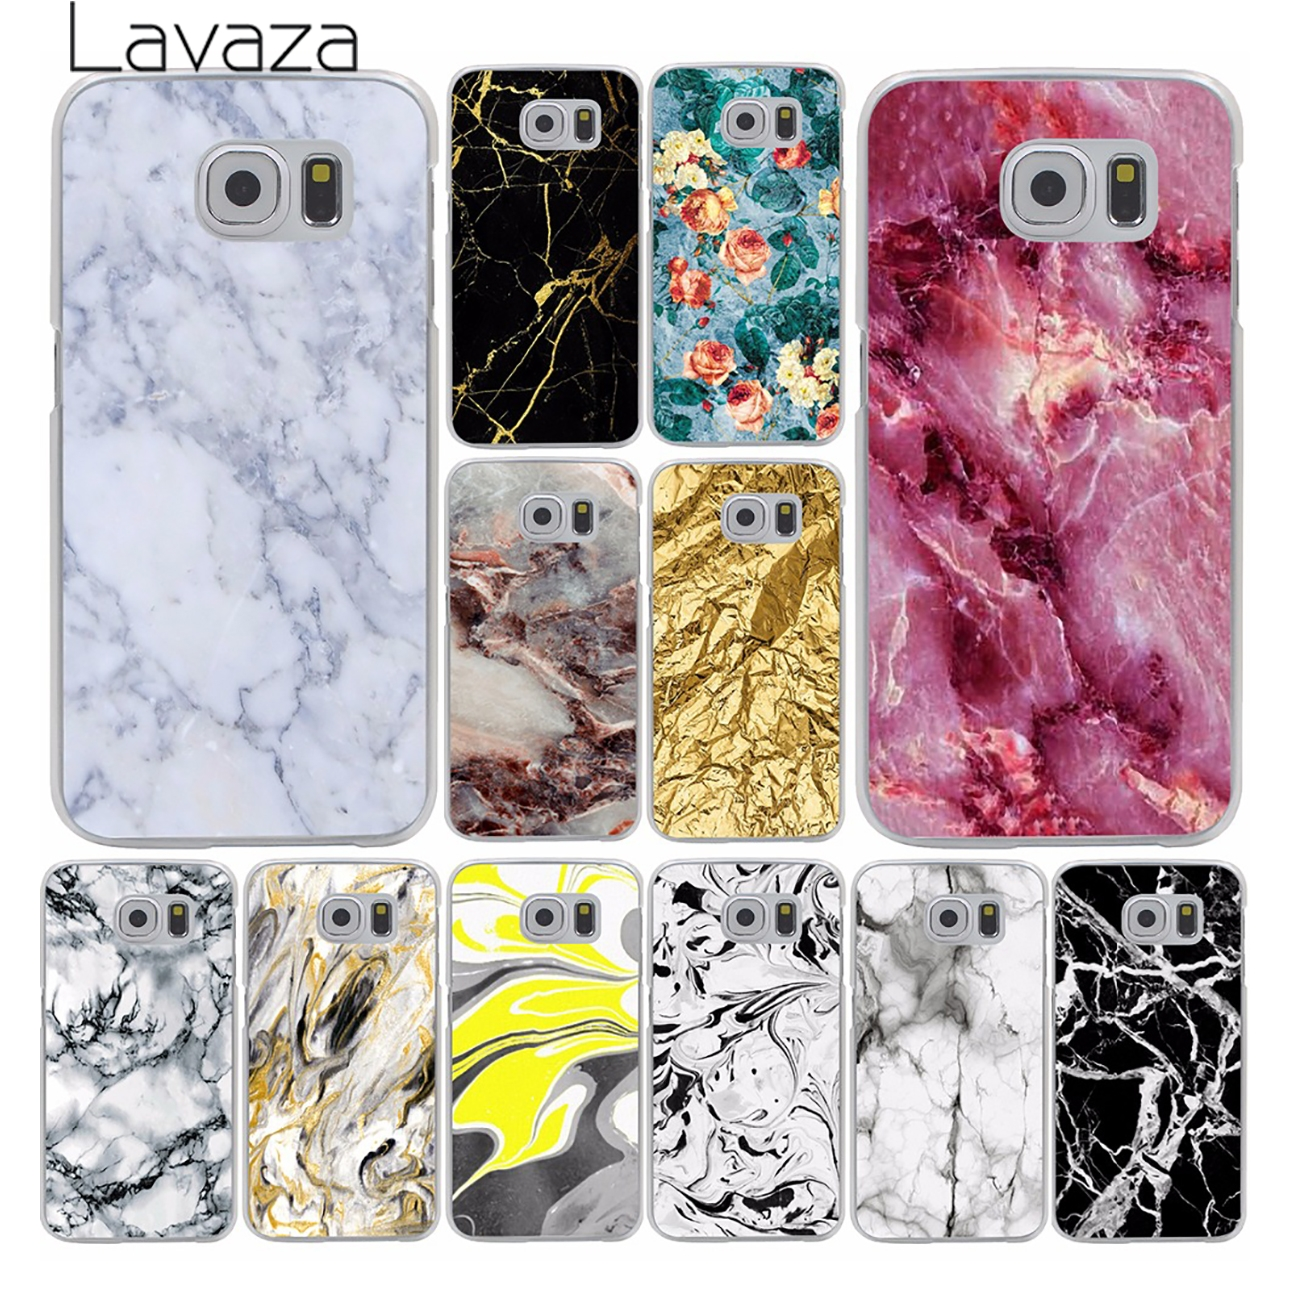 105C- Marble Texture Hrad Style Case Cover for Samsung Galaxy S5 S4 S3 I9600 I9500 I9300 1PC